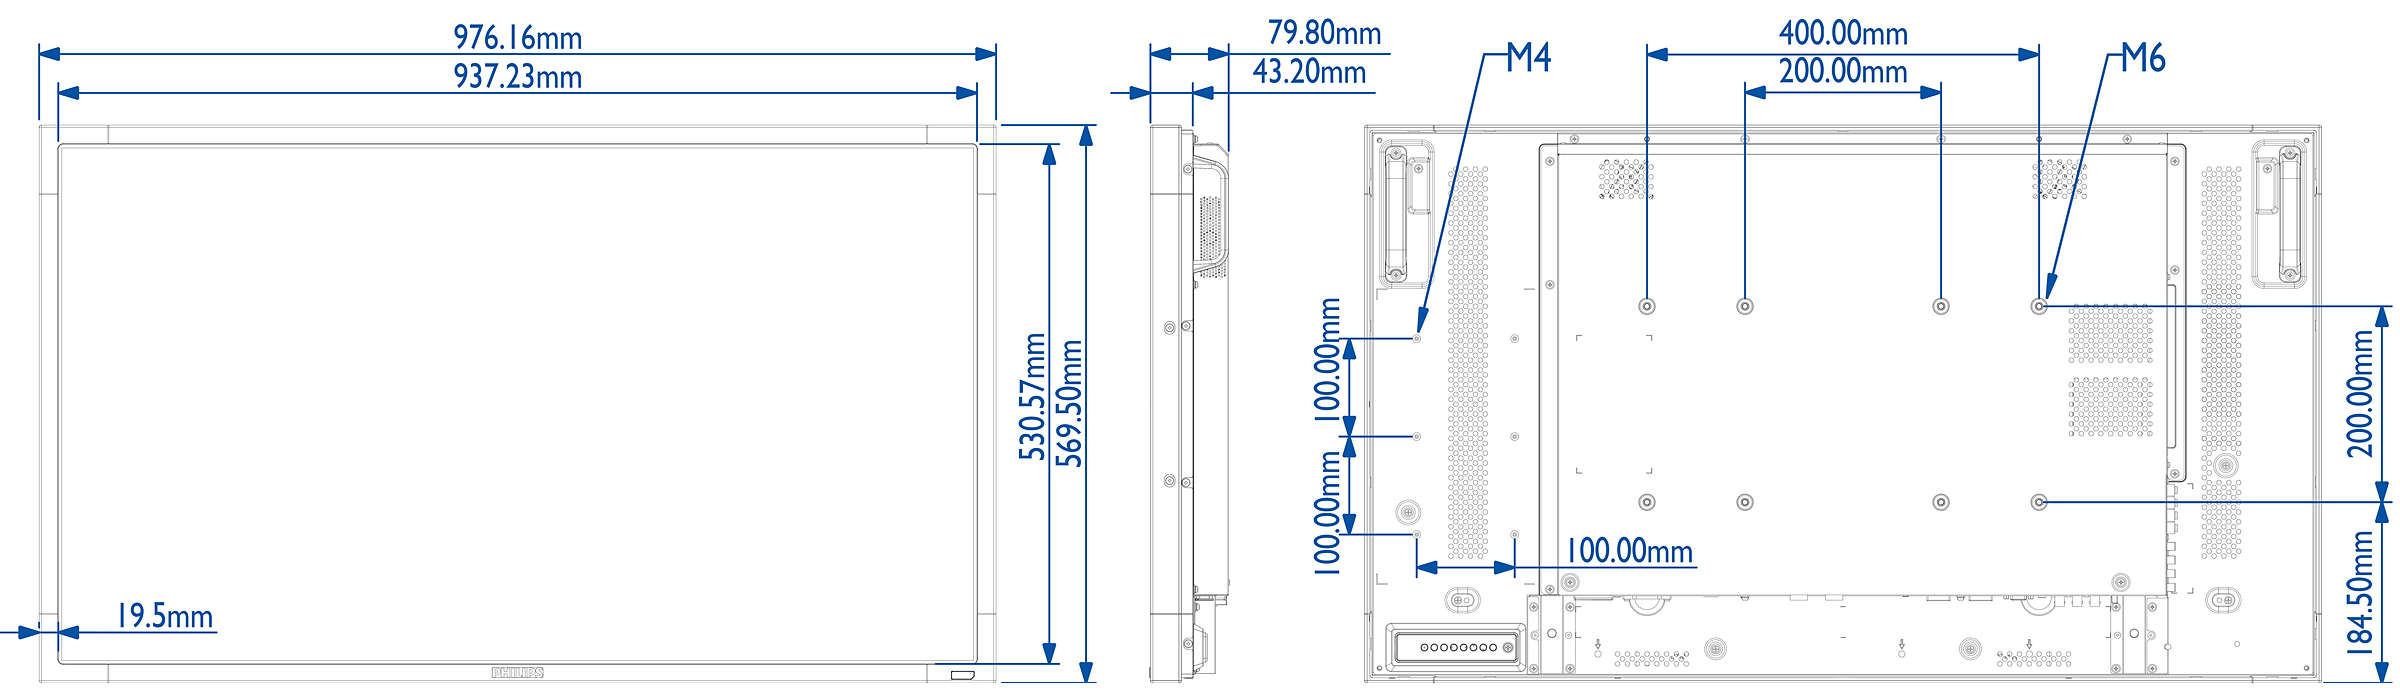 Multi Touch Display Bdl4254et 00 Philips Main Board Schematic Circuit Diagram Discover A New Level Of Interaction